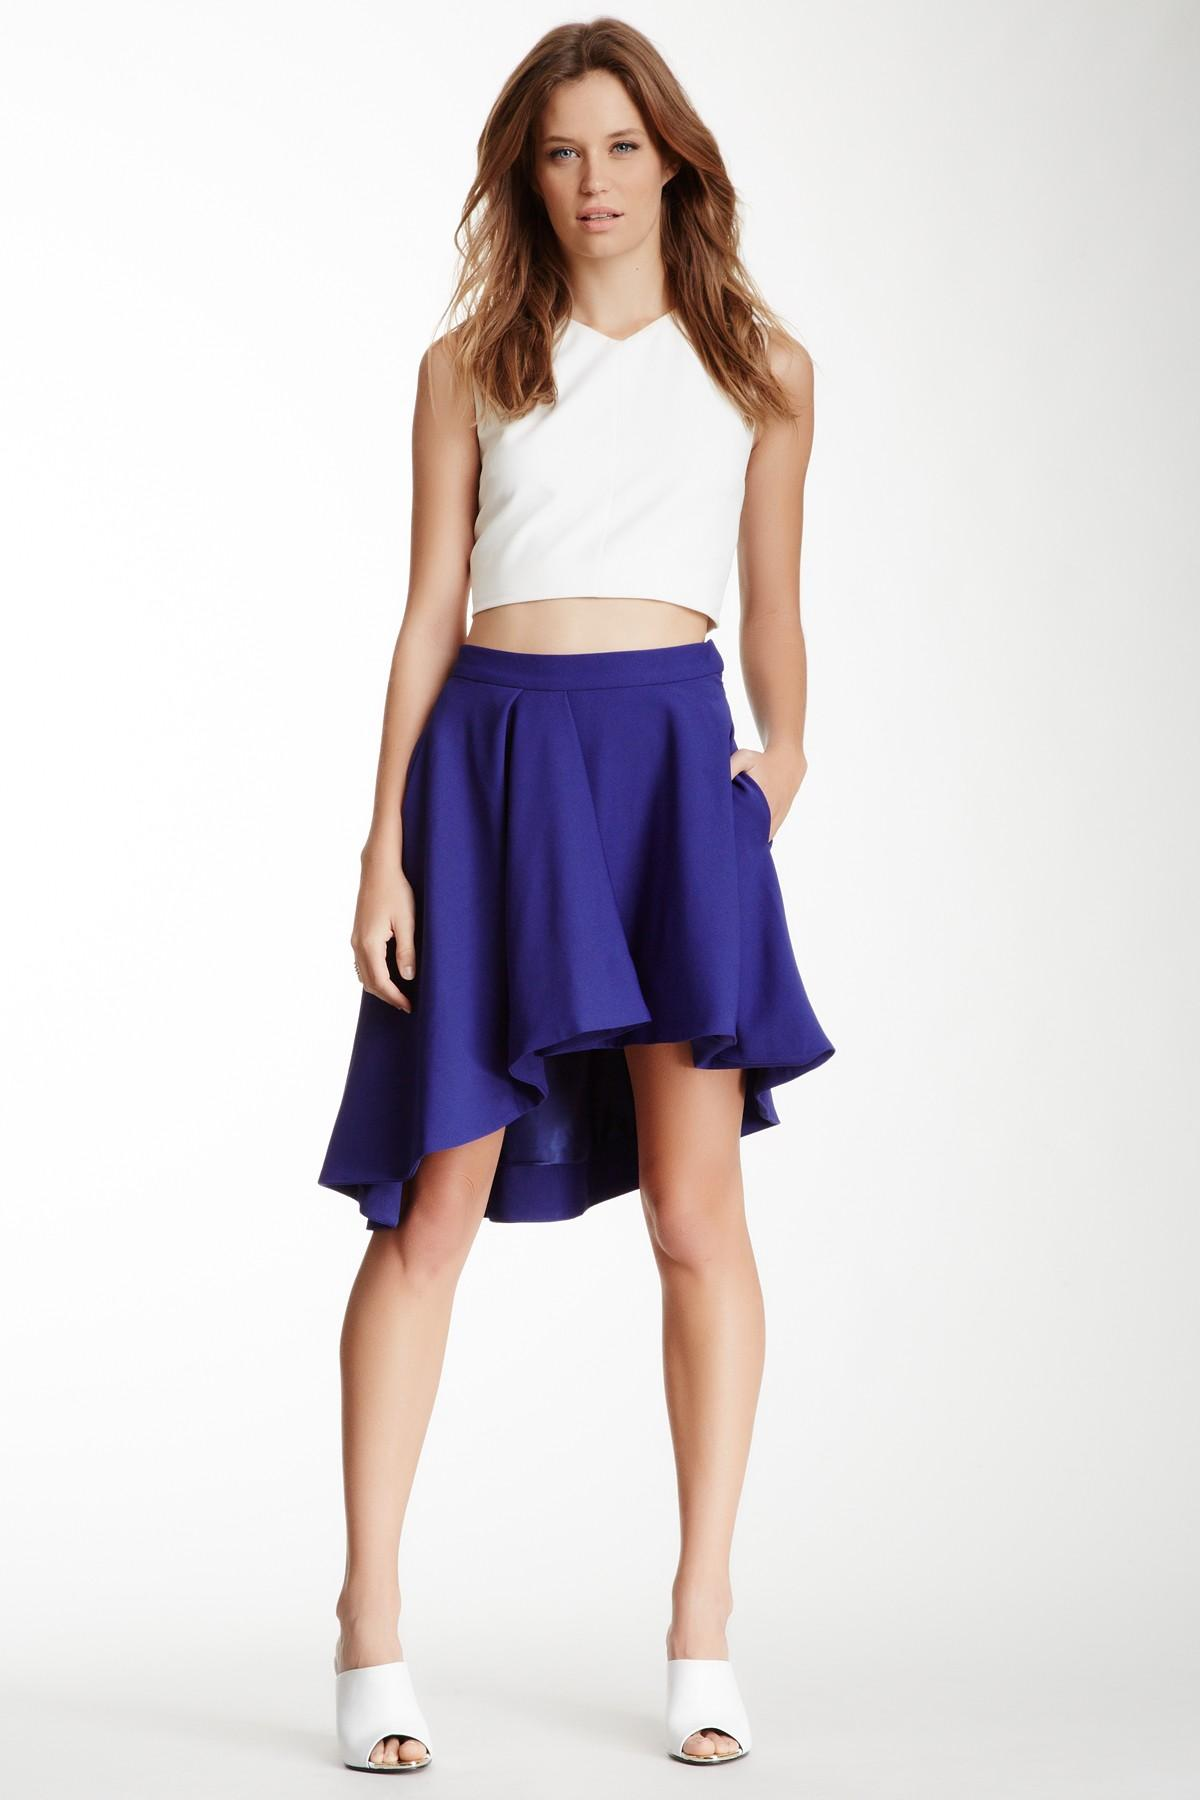 Browse the superb asymmetrical skirts edit at Farfetch. Find ruffled skirts, wrap skirts & more from this luxury asymmetric skirts range.